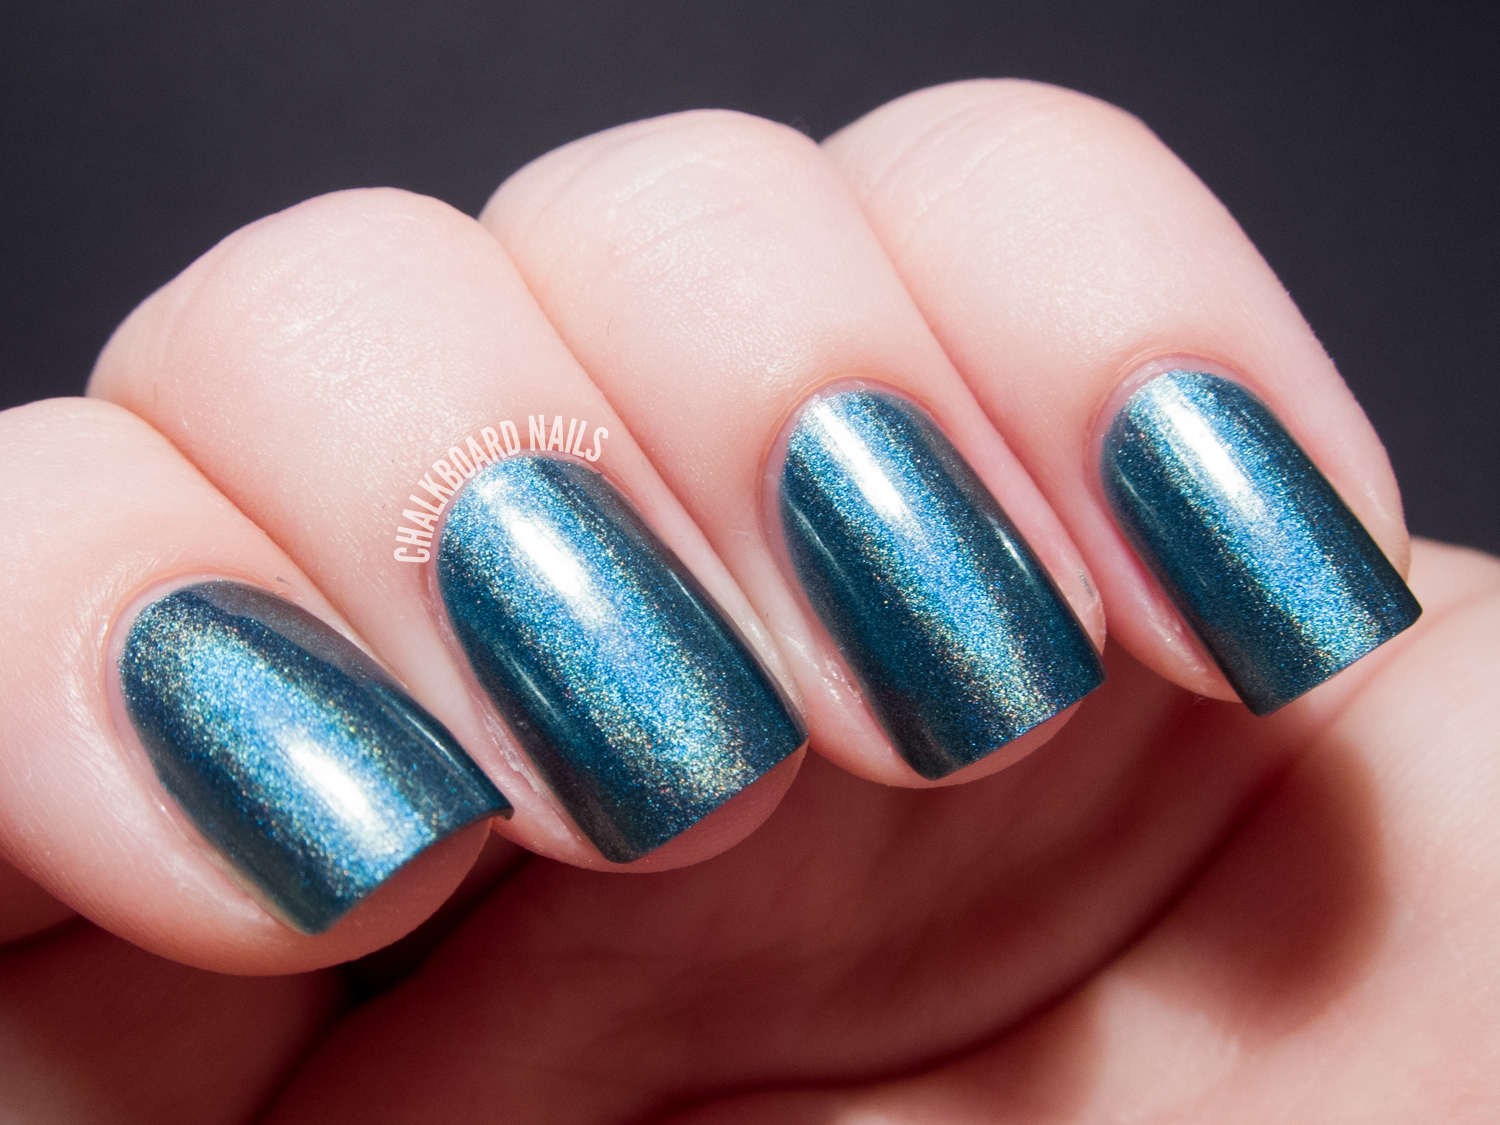 China Glaze Hologlam Collection Take a Trek nail polish